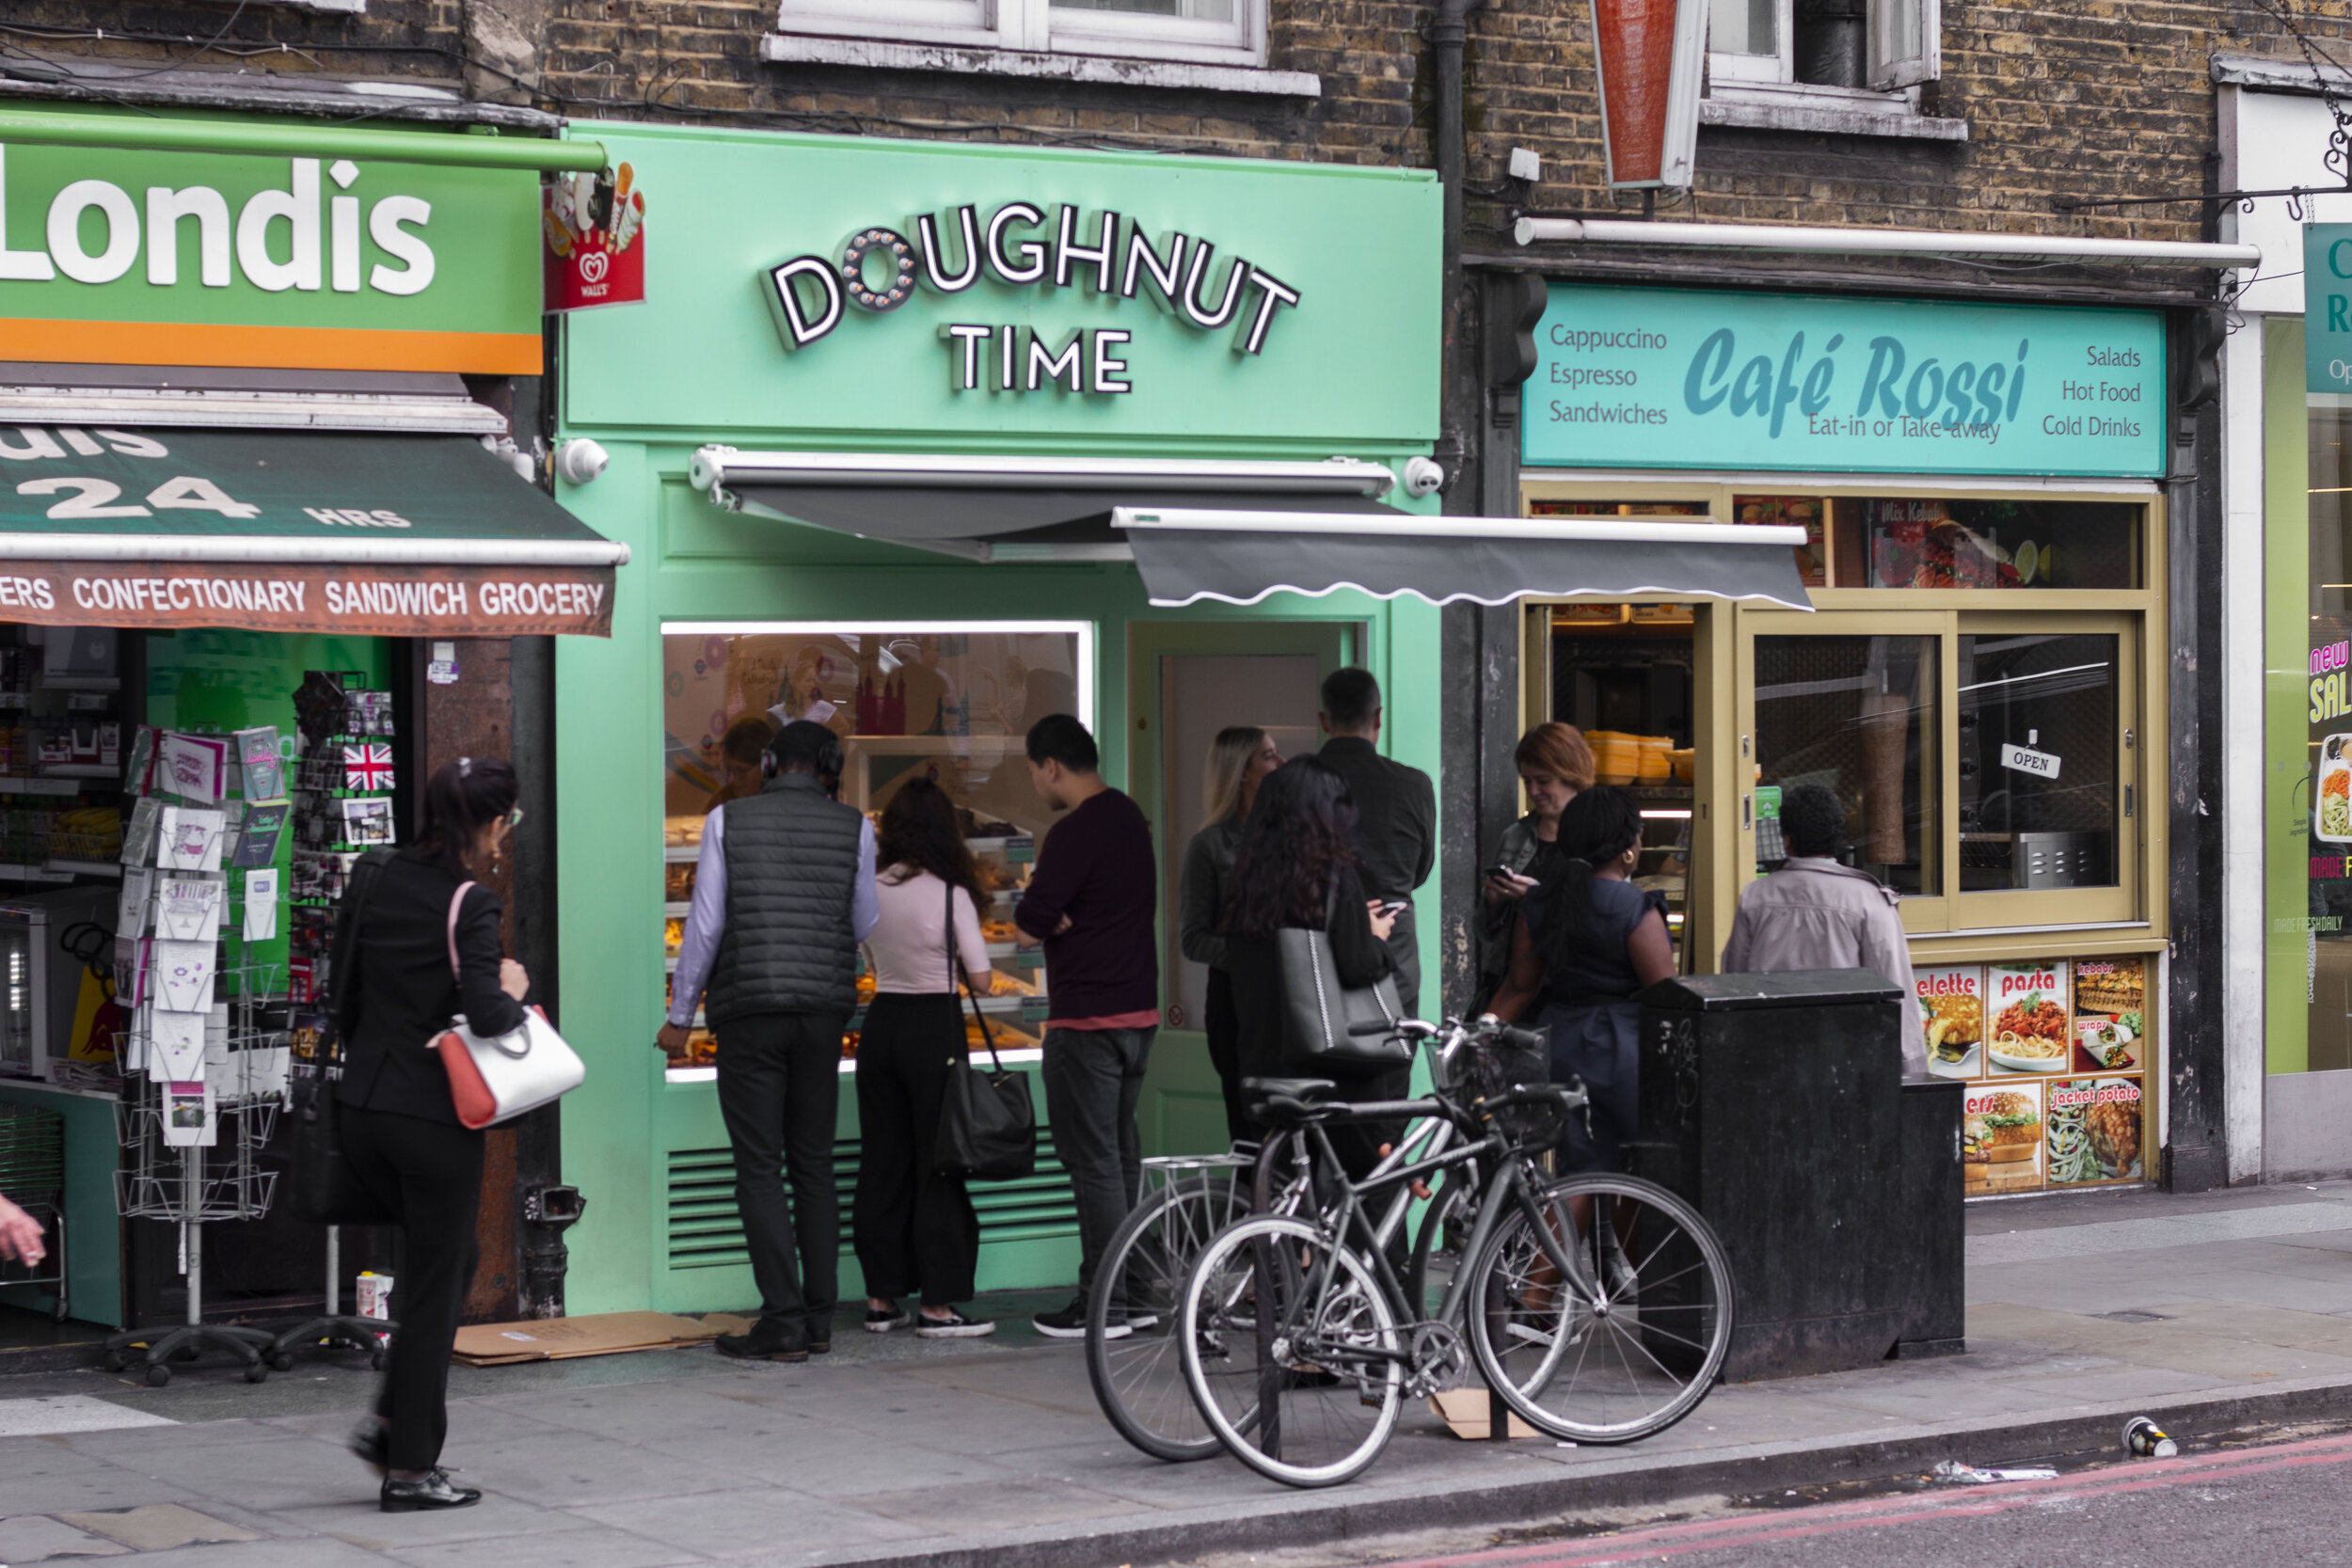 Borough High Street - 55 Borough High St, LondonSE1 1NEMon-Fri: 8am-10pmSat-Sun: 8am-10pm